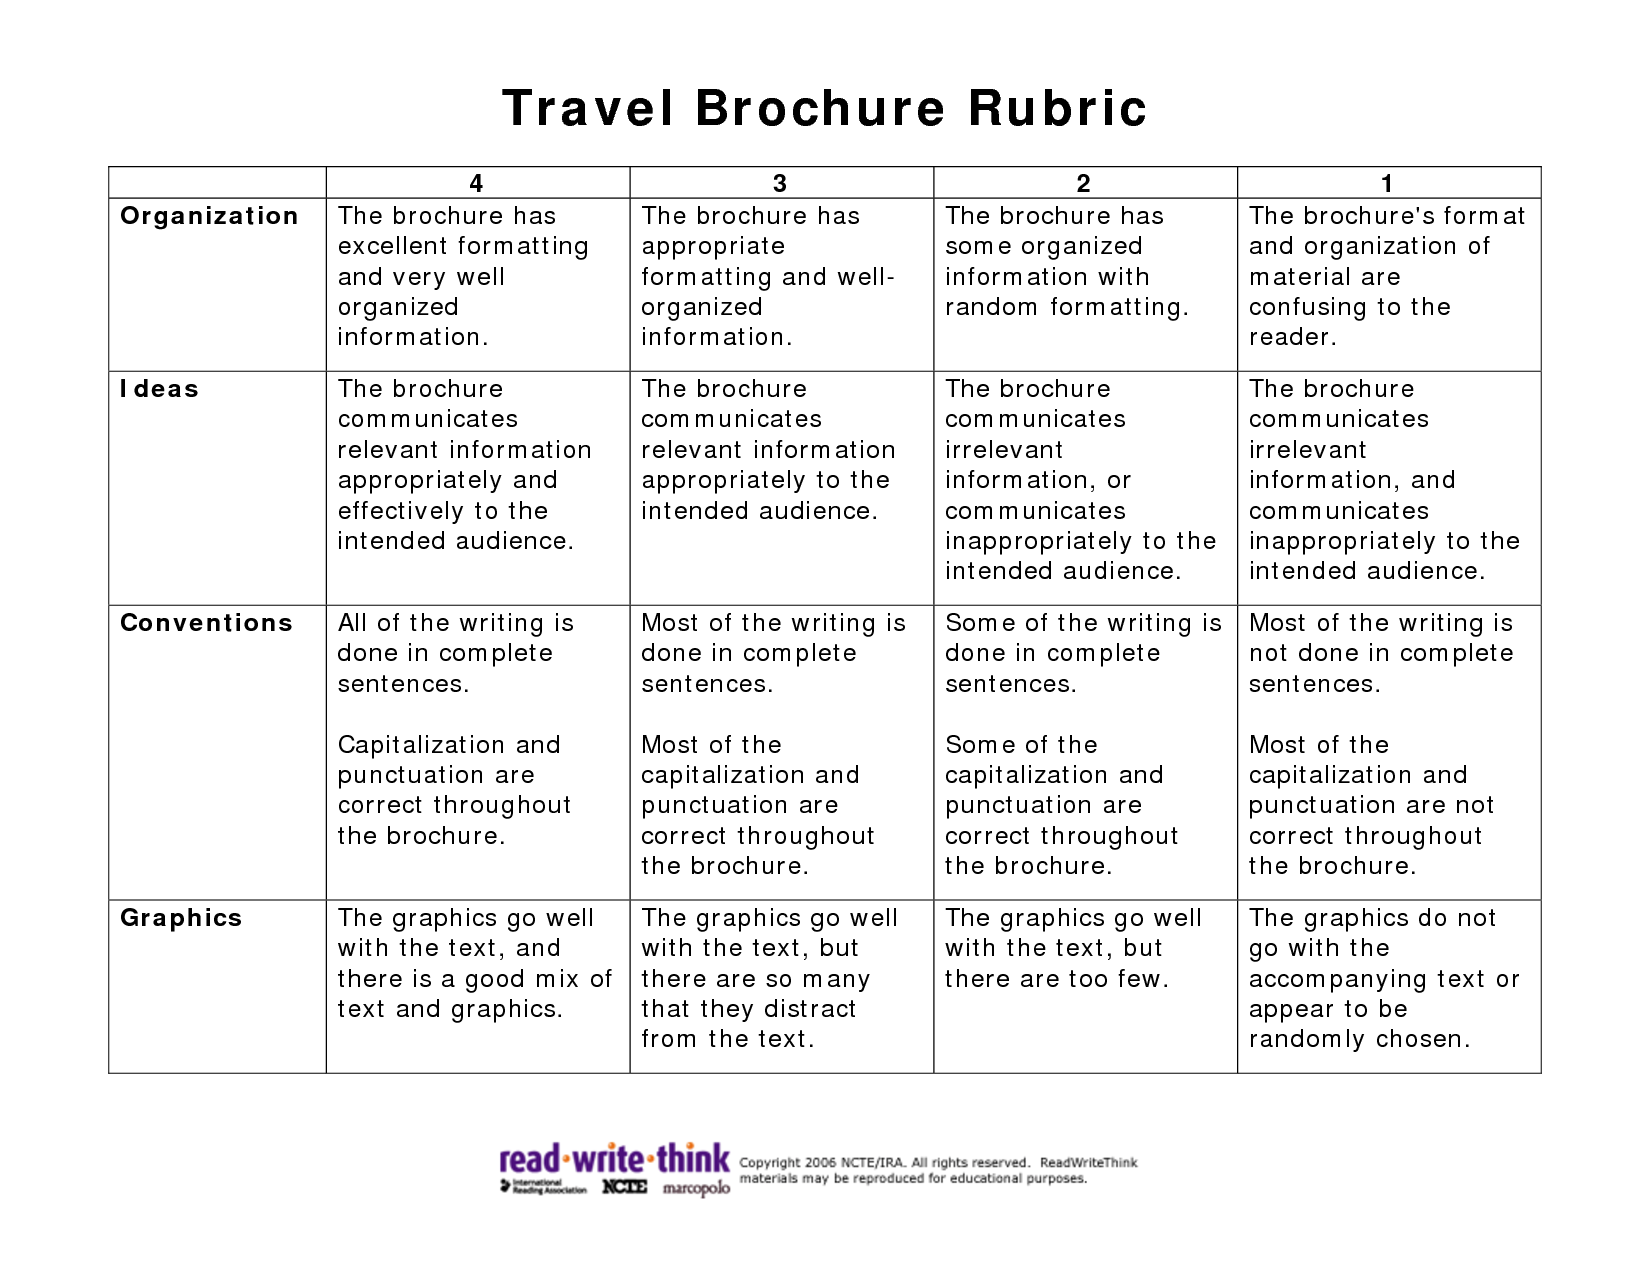 Travel Brochure Rubric Pdf picture | Teaching | Travel brochure